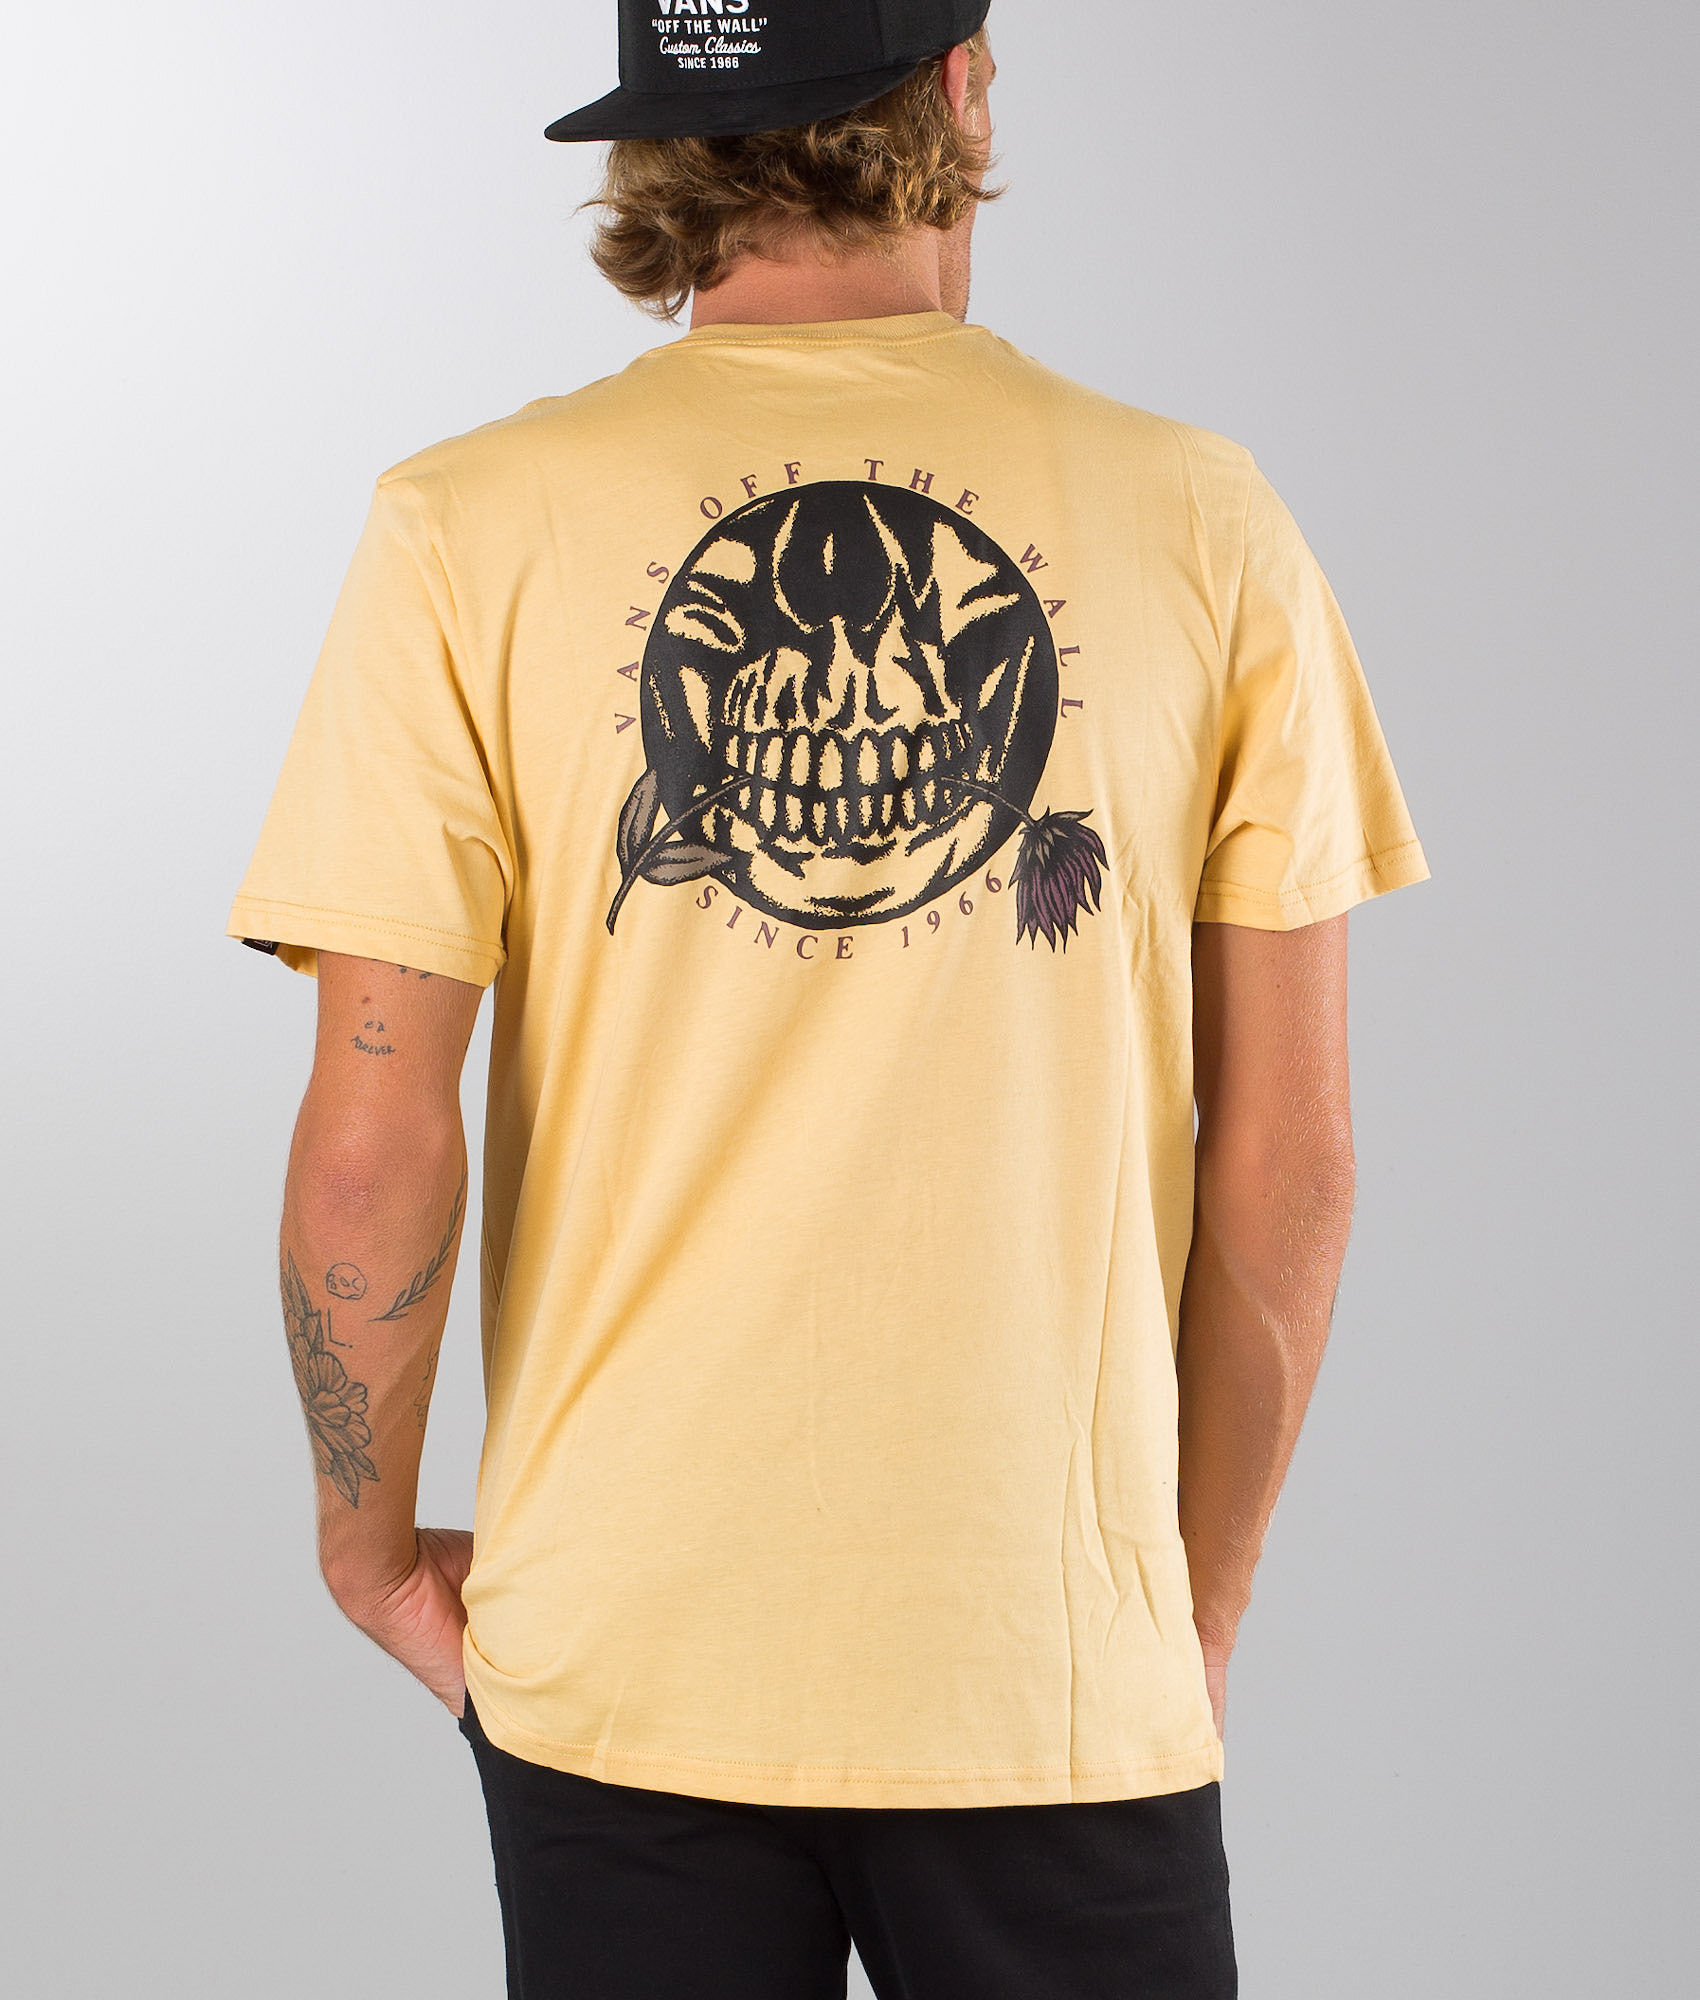 61157cce Vans Pushing Up Daisies T-shirt New Wheat